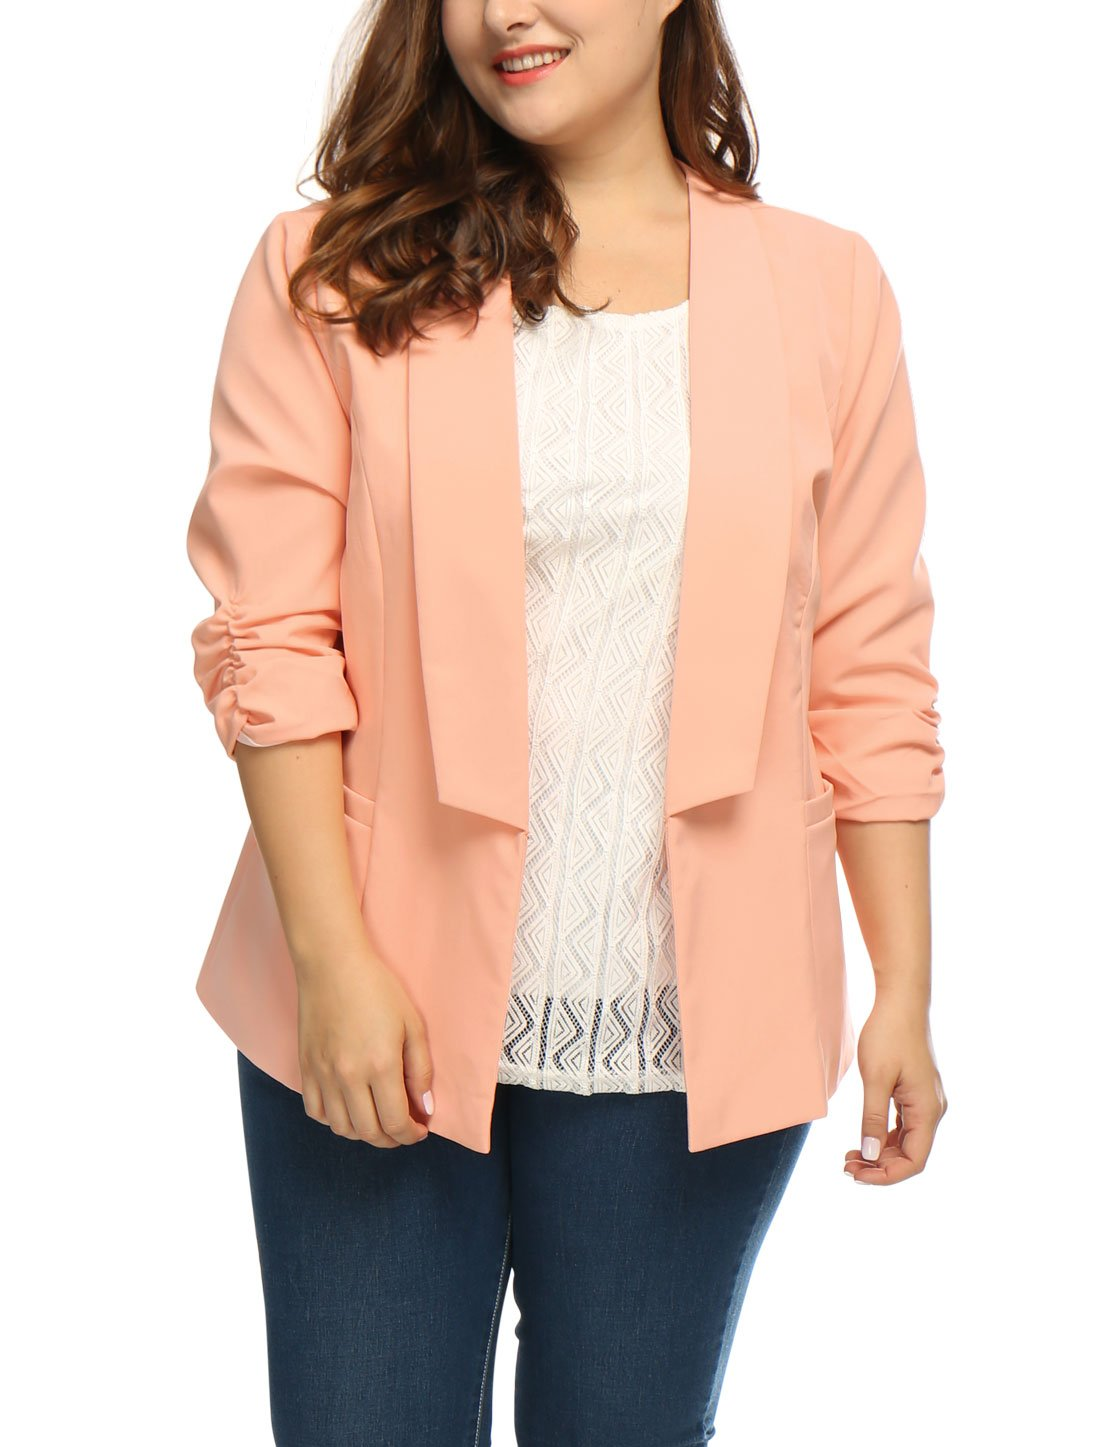 uxcell Women's Plus Size 3/4 Sleeves Shawl Collar Casual Blazer g16011200ux0045